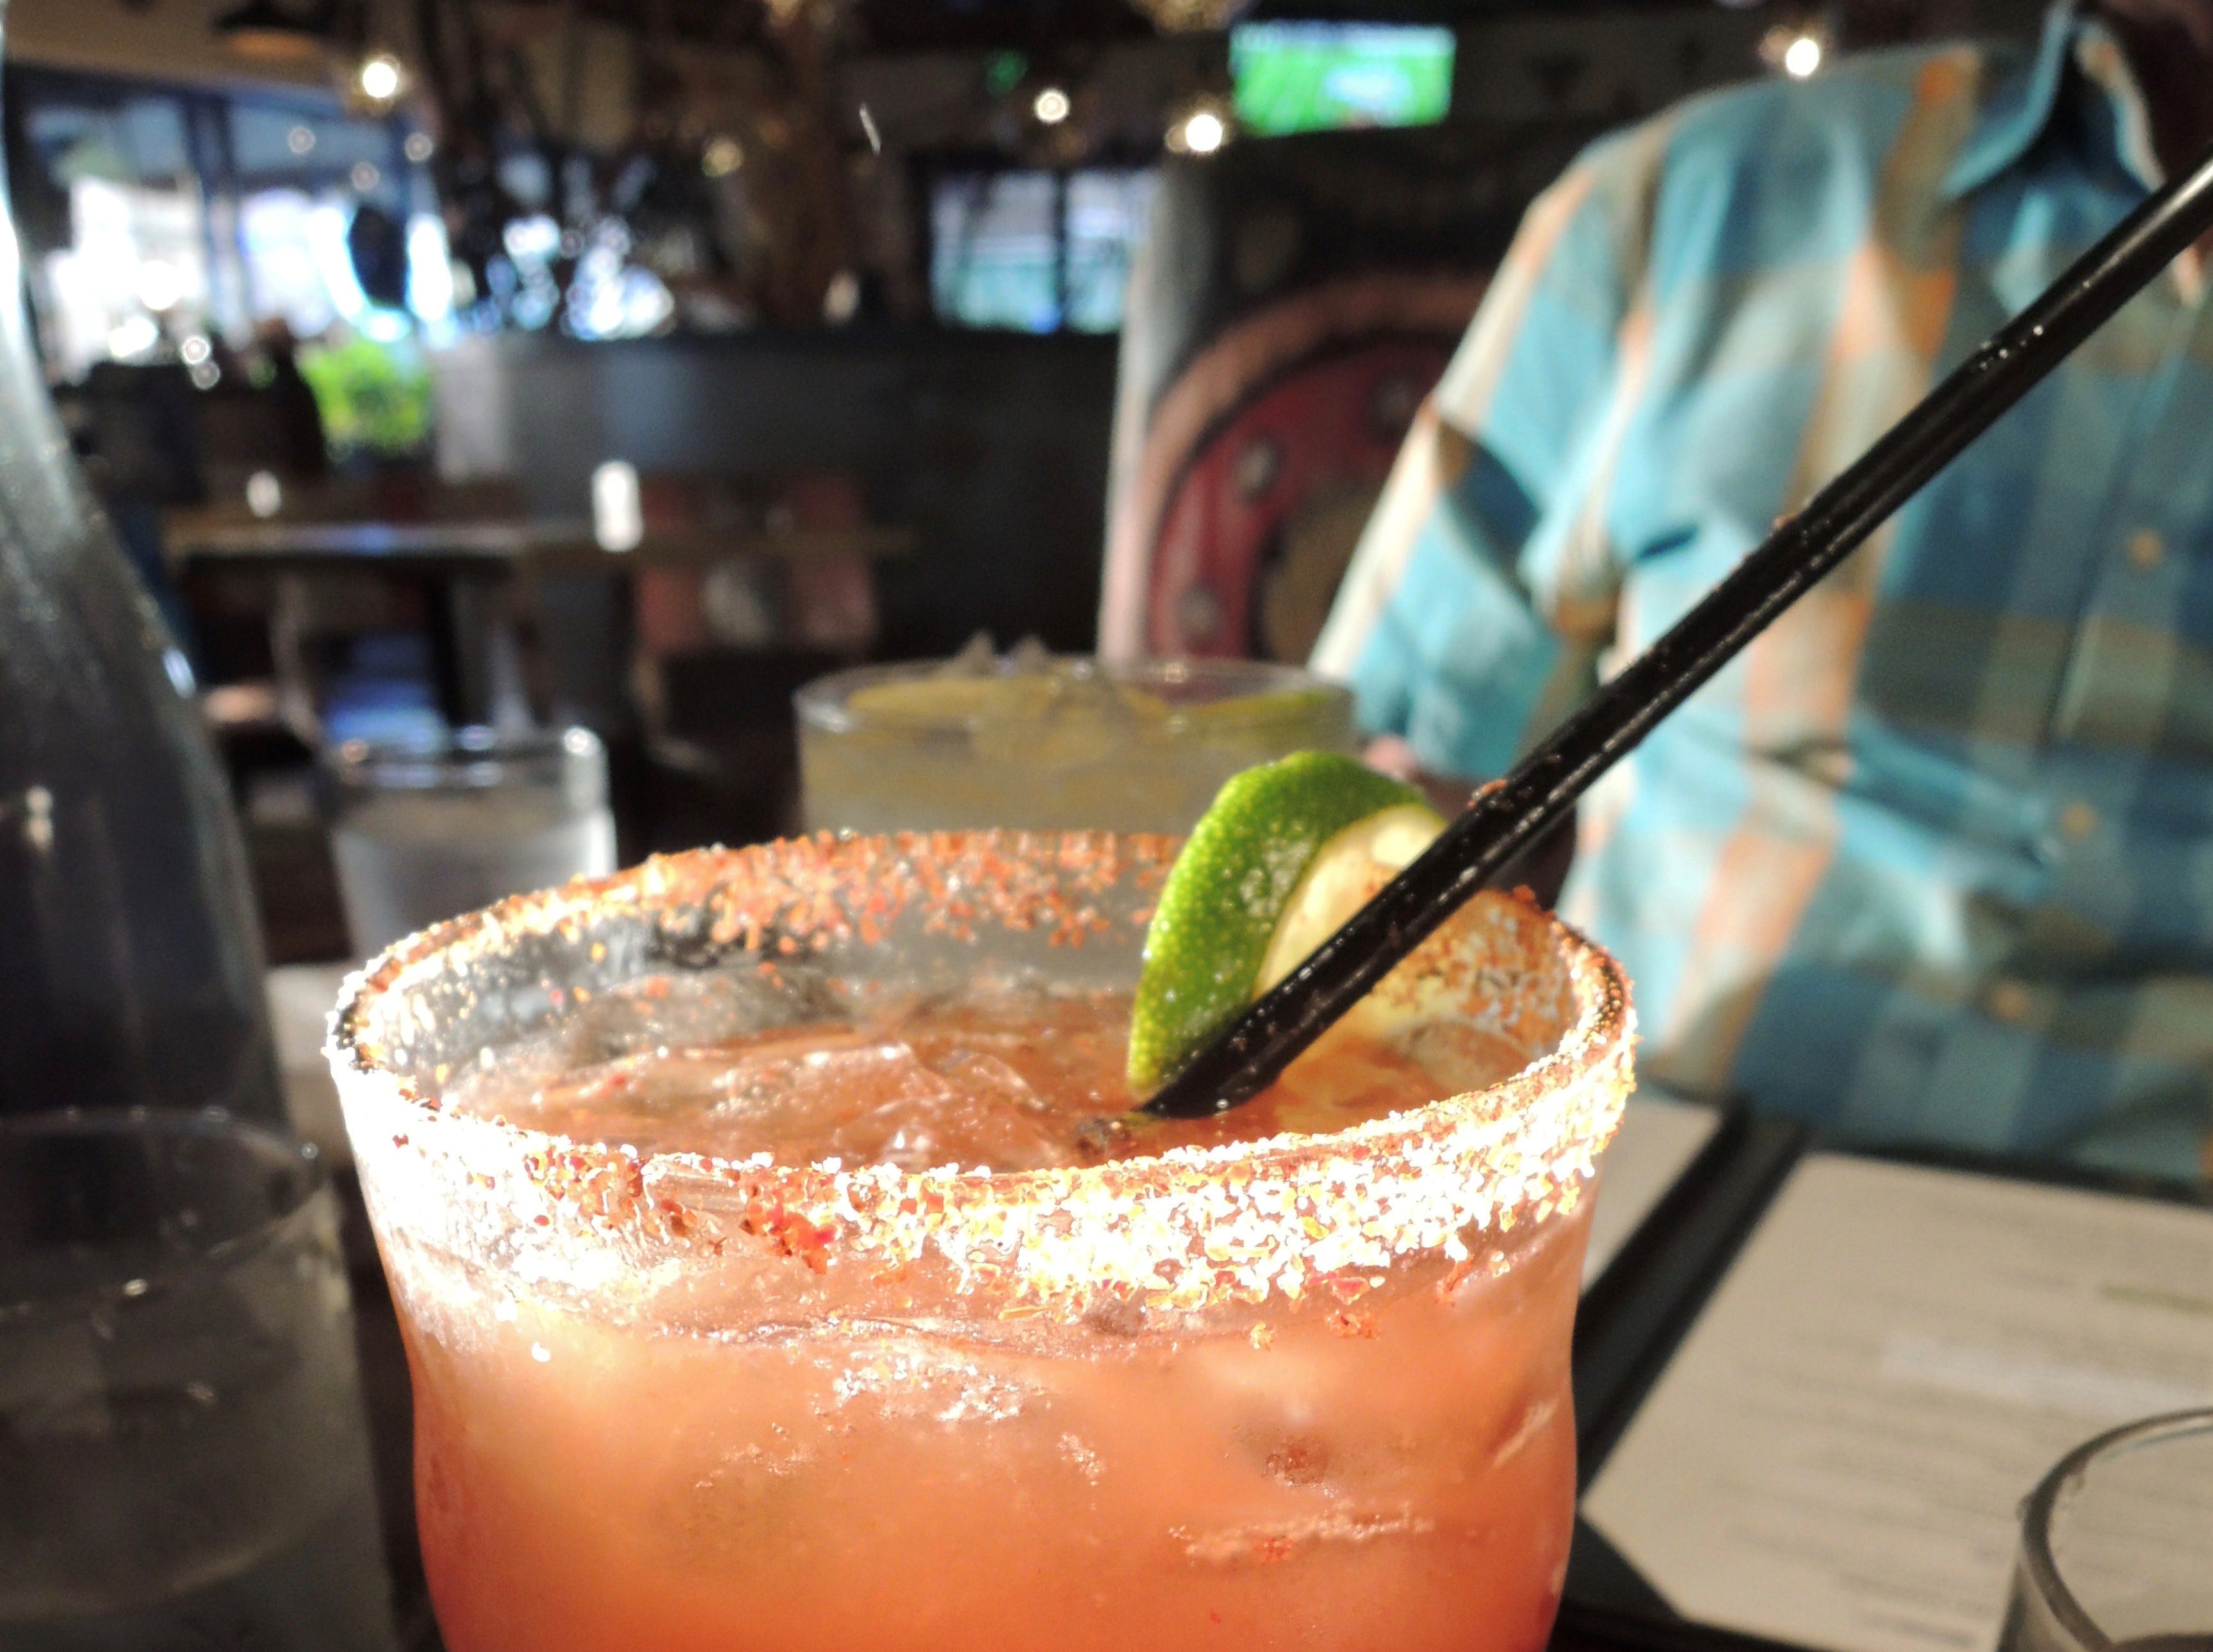 A Michelada at Cicada Cantina, a traditional Mexican mashup of beer and spicy tomato juice